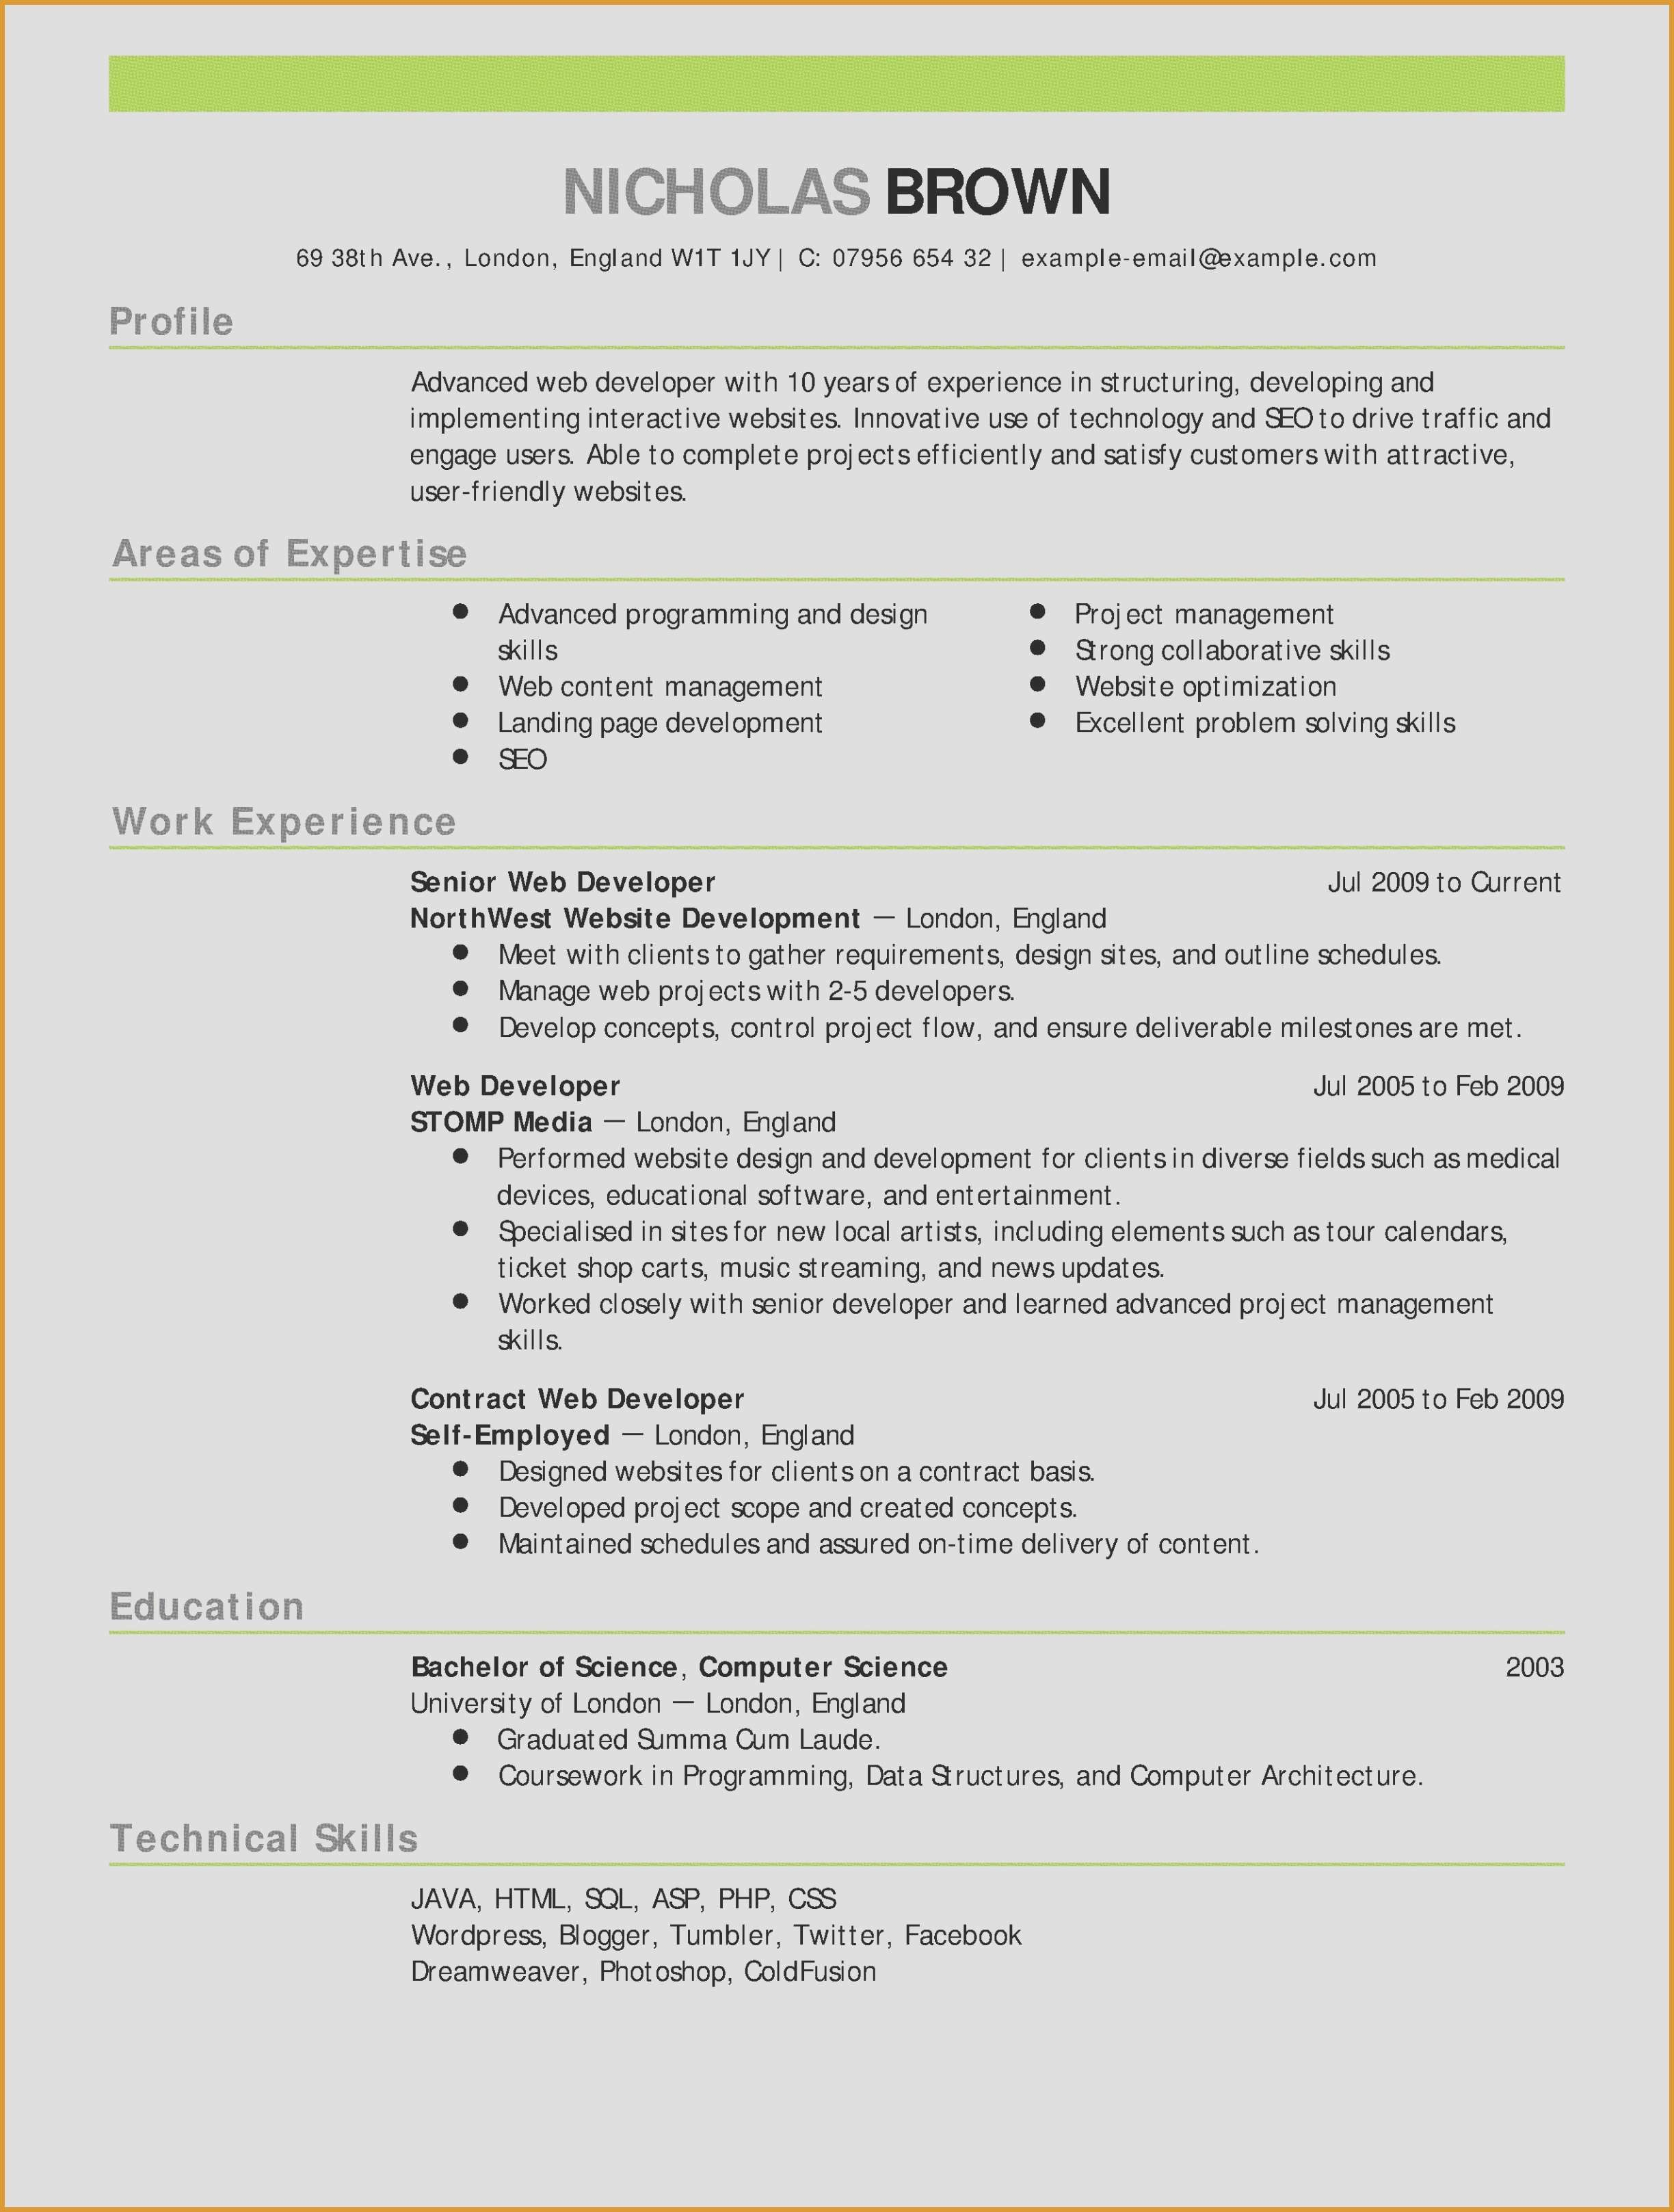 Resume and Cover Letter Review - Resume Review Services Inspirational Resume Review 0d Wallpapers 42